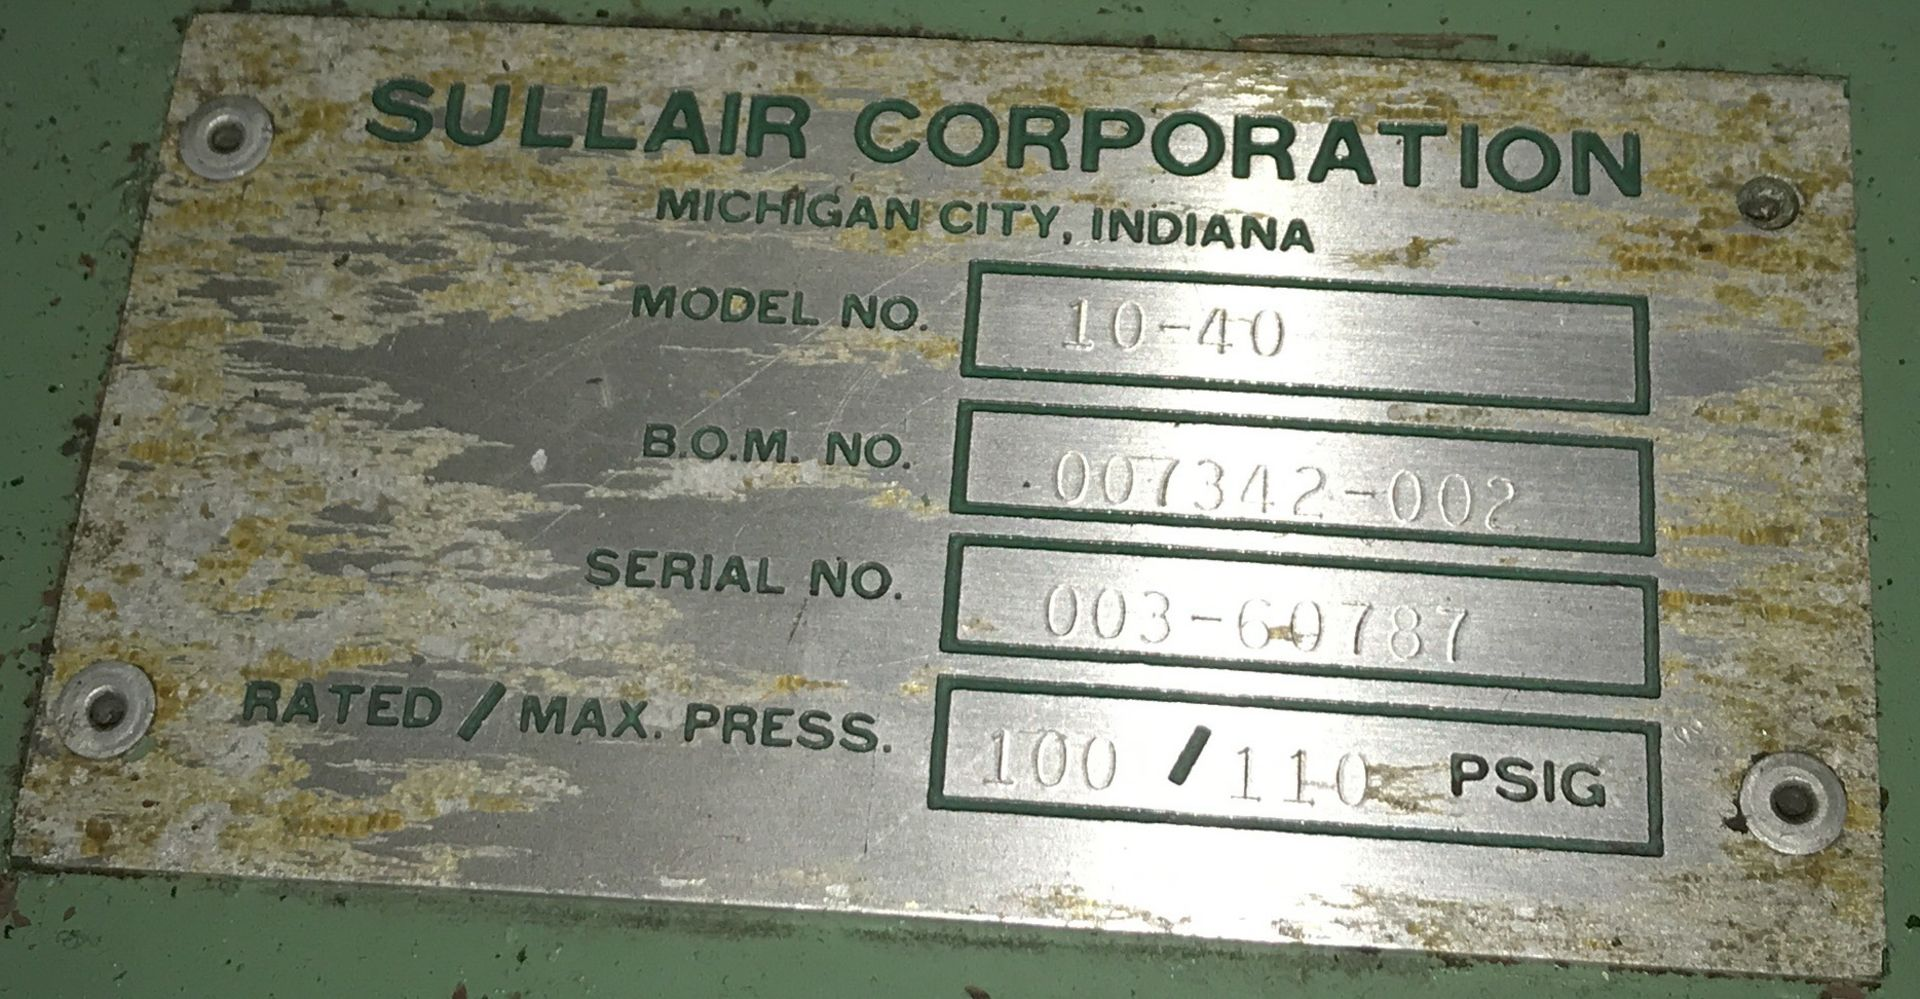 SULLAIR 10-40 40 HP ROTARY SCREW AIR COMPRESSOR WITH 100/110 PSIG, S/N: 003-60787 (CI) [RIGGING FEES - Image 2 of 2